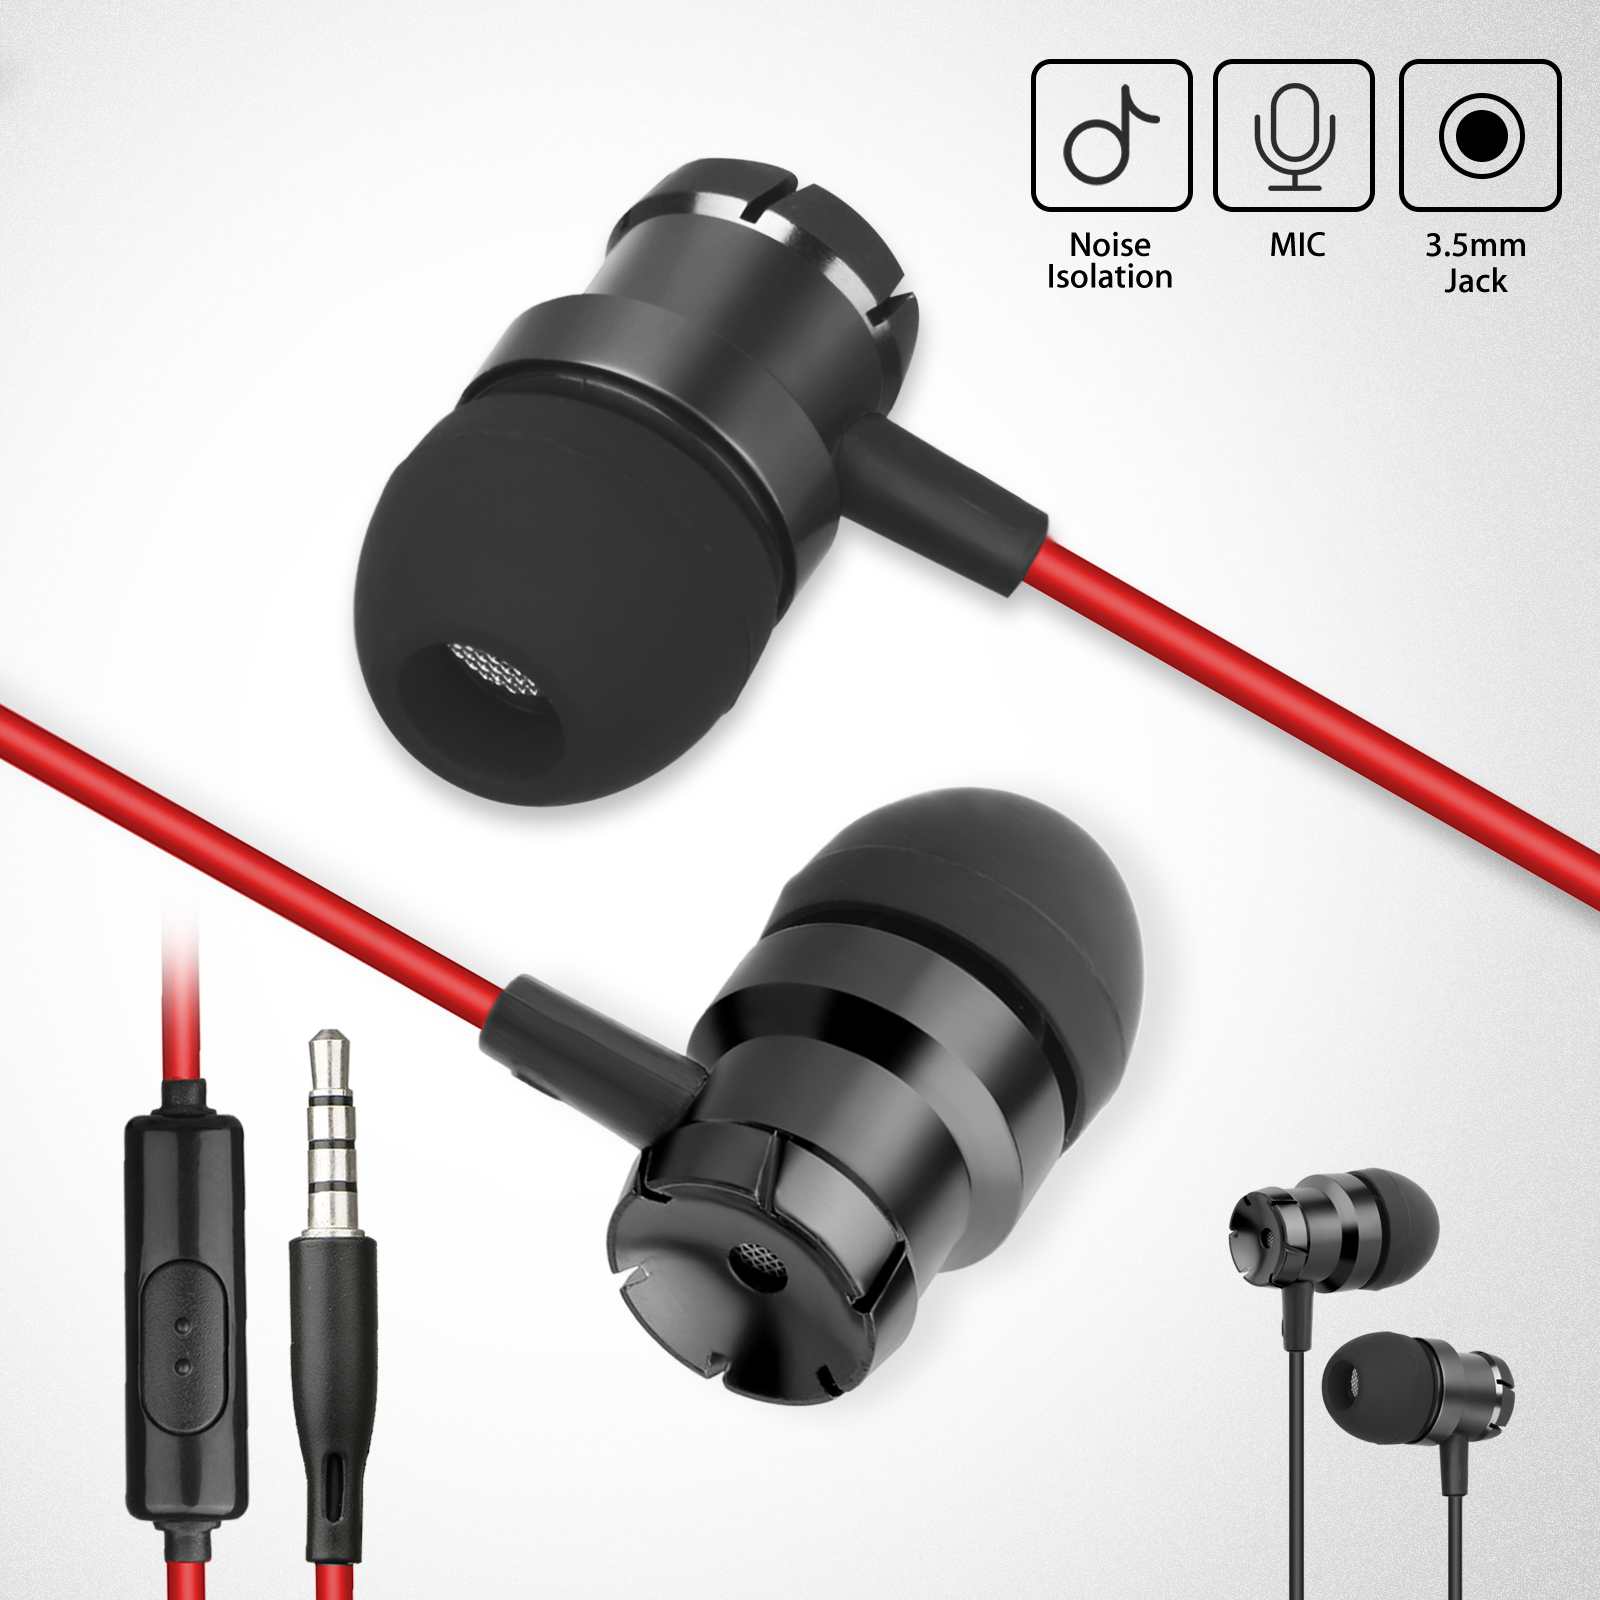 TSV 3.5mm In-Ear Stereo Earbuds Earphone Headset Headphone Super Bass Music With Mic